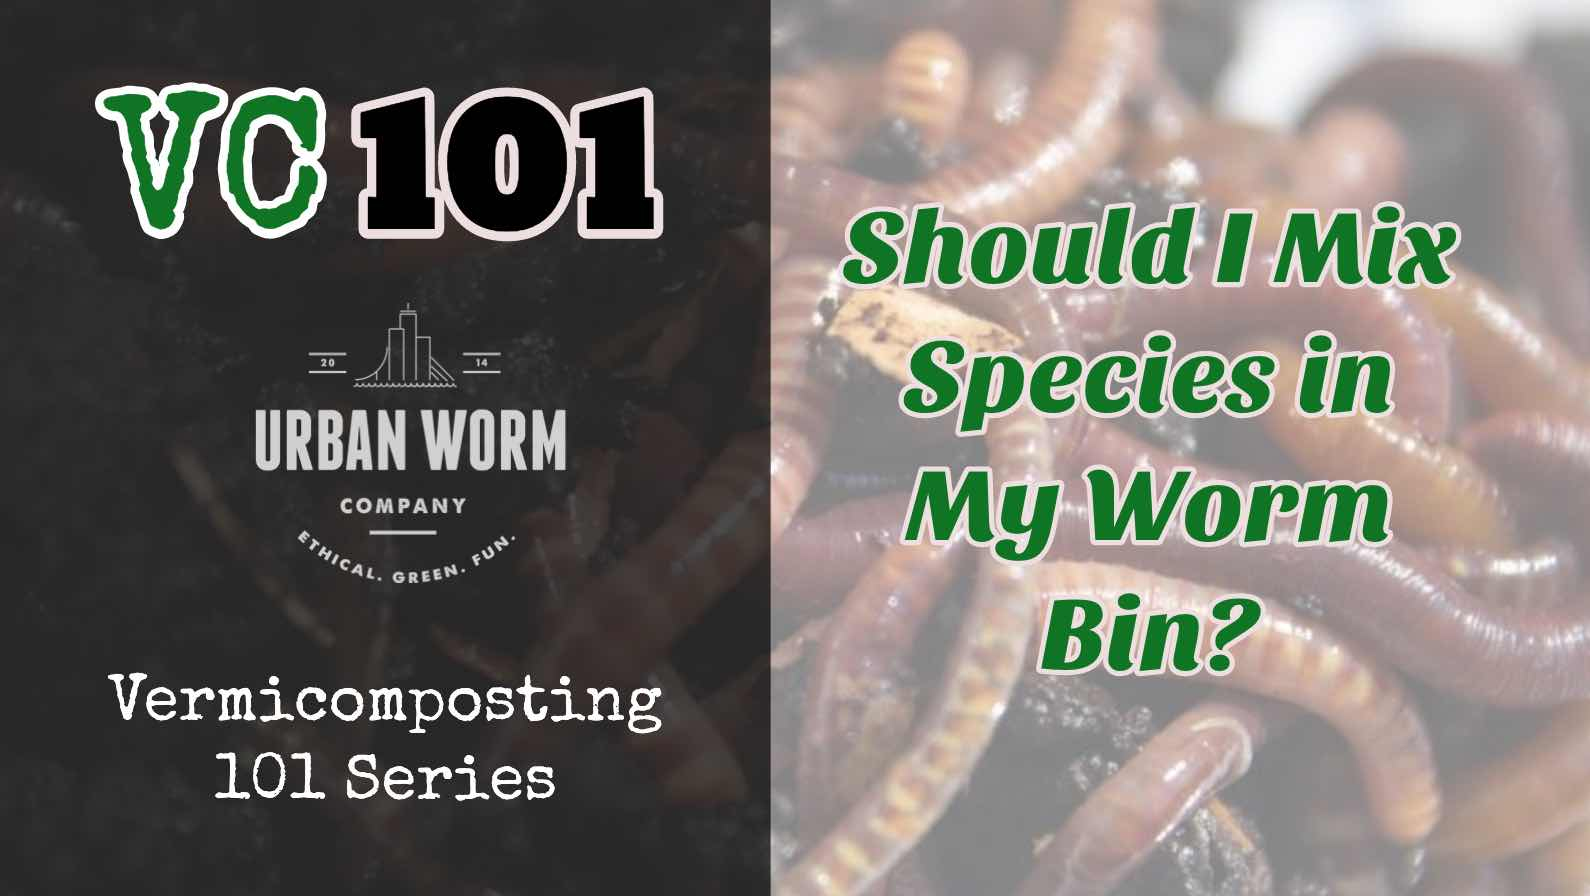 Vermicomposting 101: Should I Mix Worm Species in My Worm Bin?